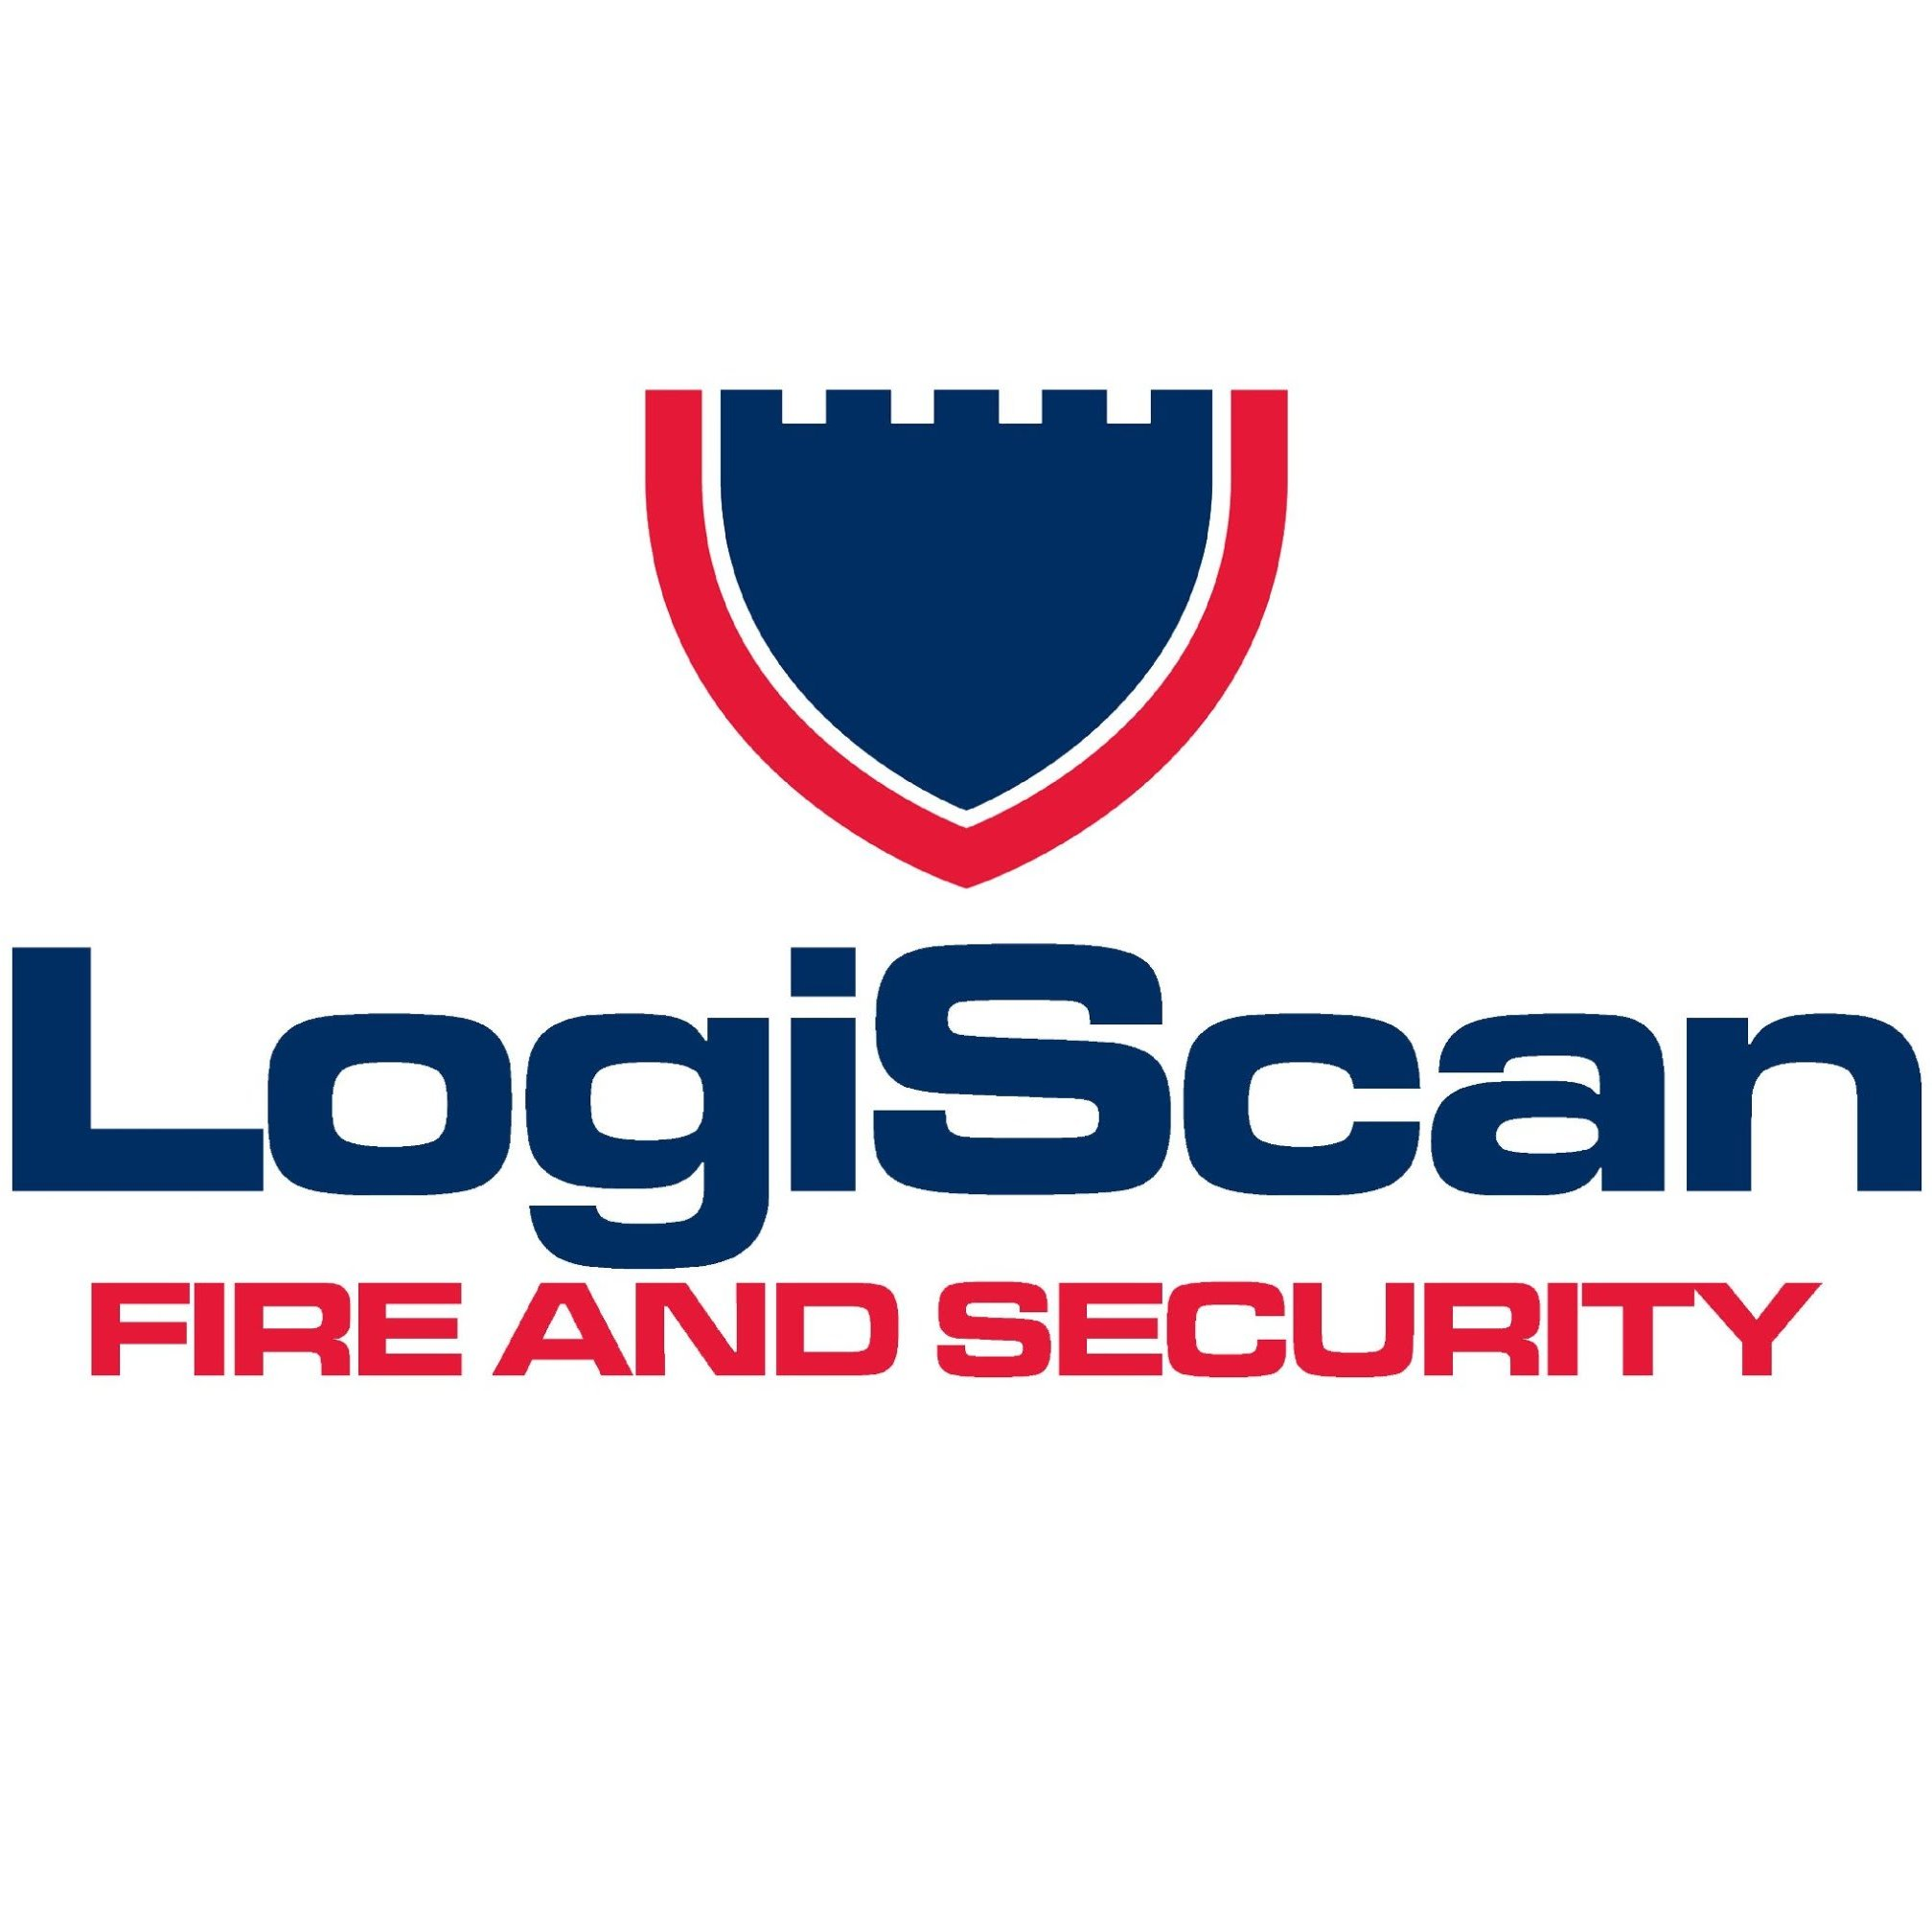 LogiScan Fire and Security - Wellington, Somerset TA21 9AD - 01823 335182 | ShowMeLocal.com